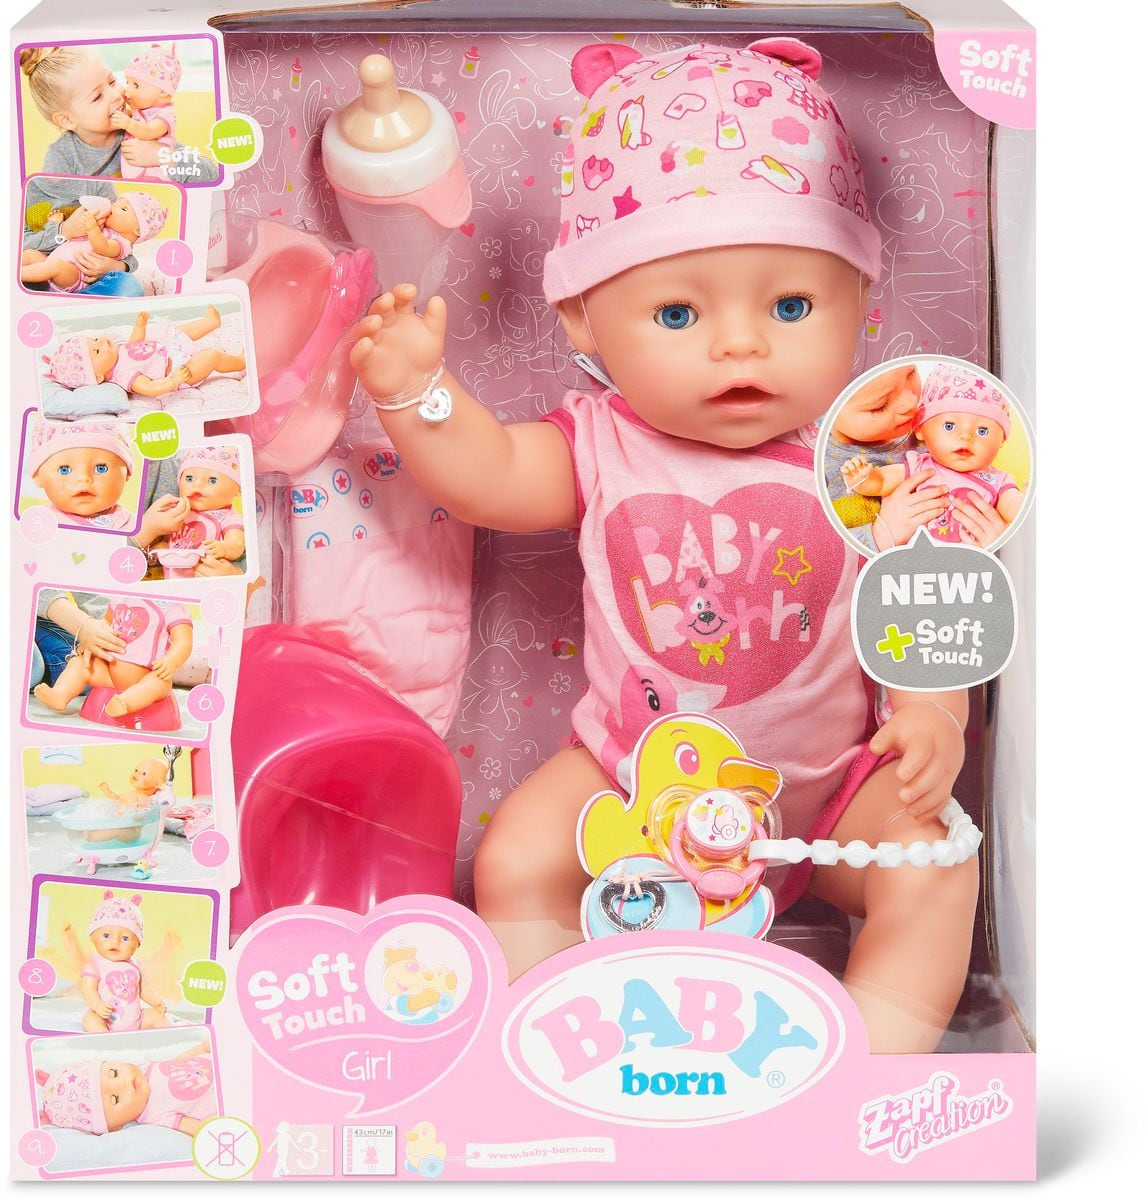 Zapf Creation Baby Born Soft Touch Girl, 43cm Puppe